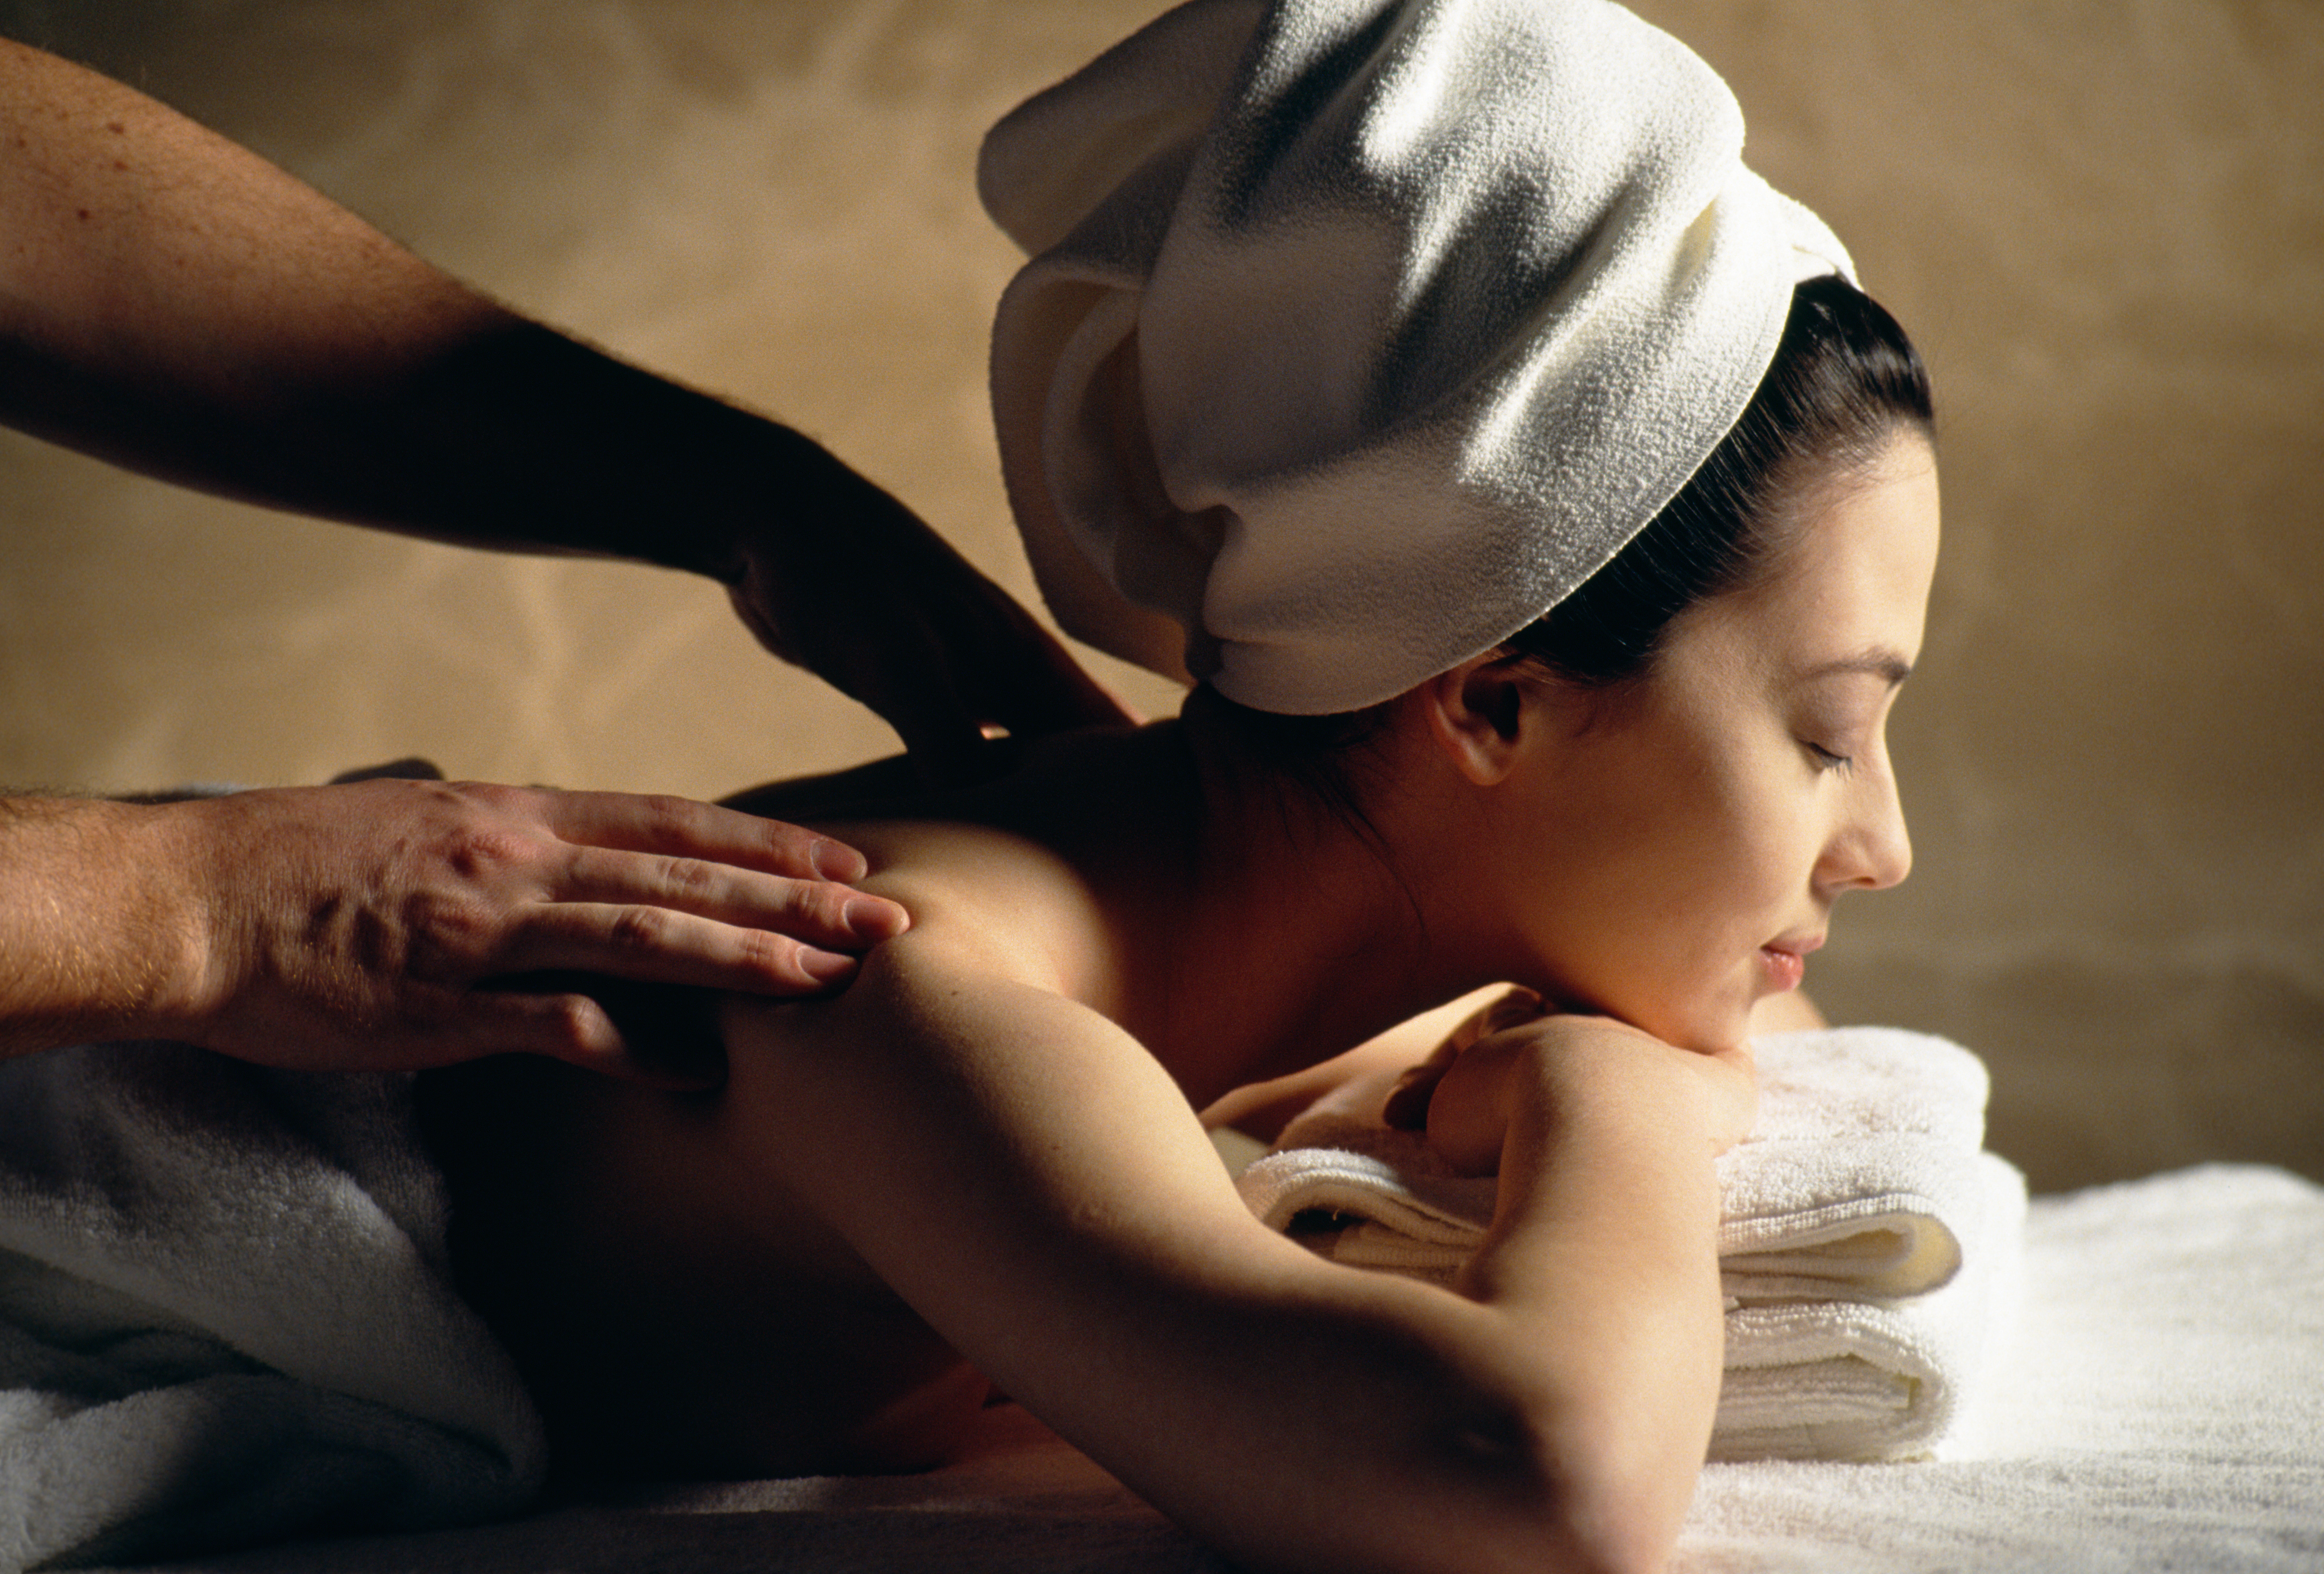 https://0901.nccdn.net/4_2/000/000/071/260/Canva---Woman-getting-a-massage.jpg